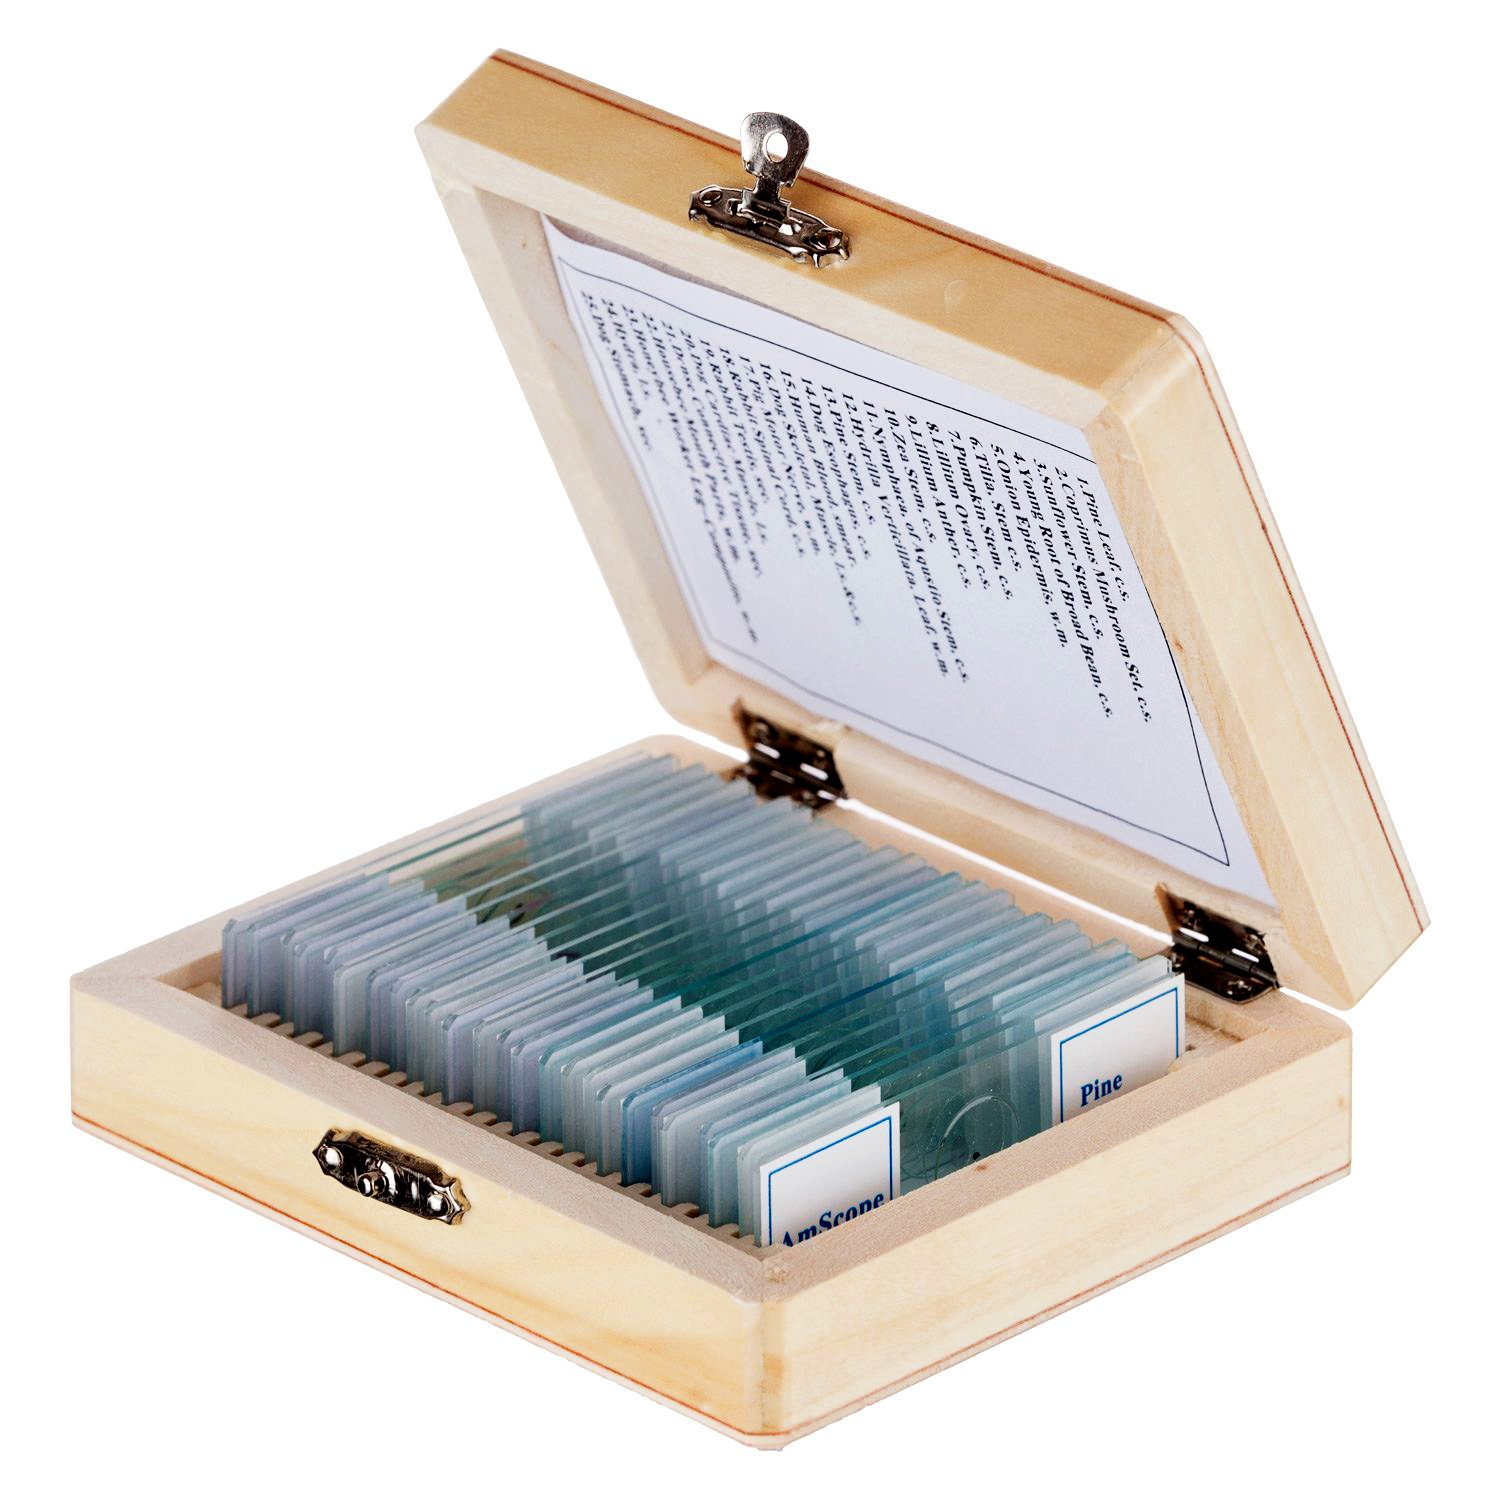 AmScope 25pc Glass Slide Microscope Prepared Slides Assorted Specimens of Plants Insects and Animal Tissues in Wooden Storage Box Case